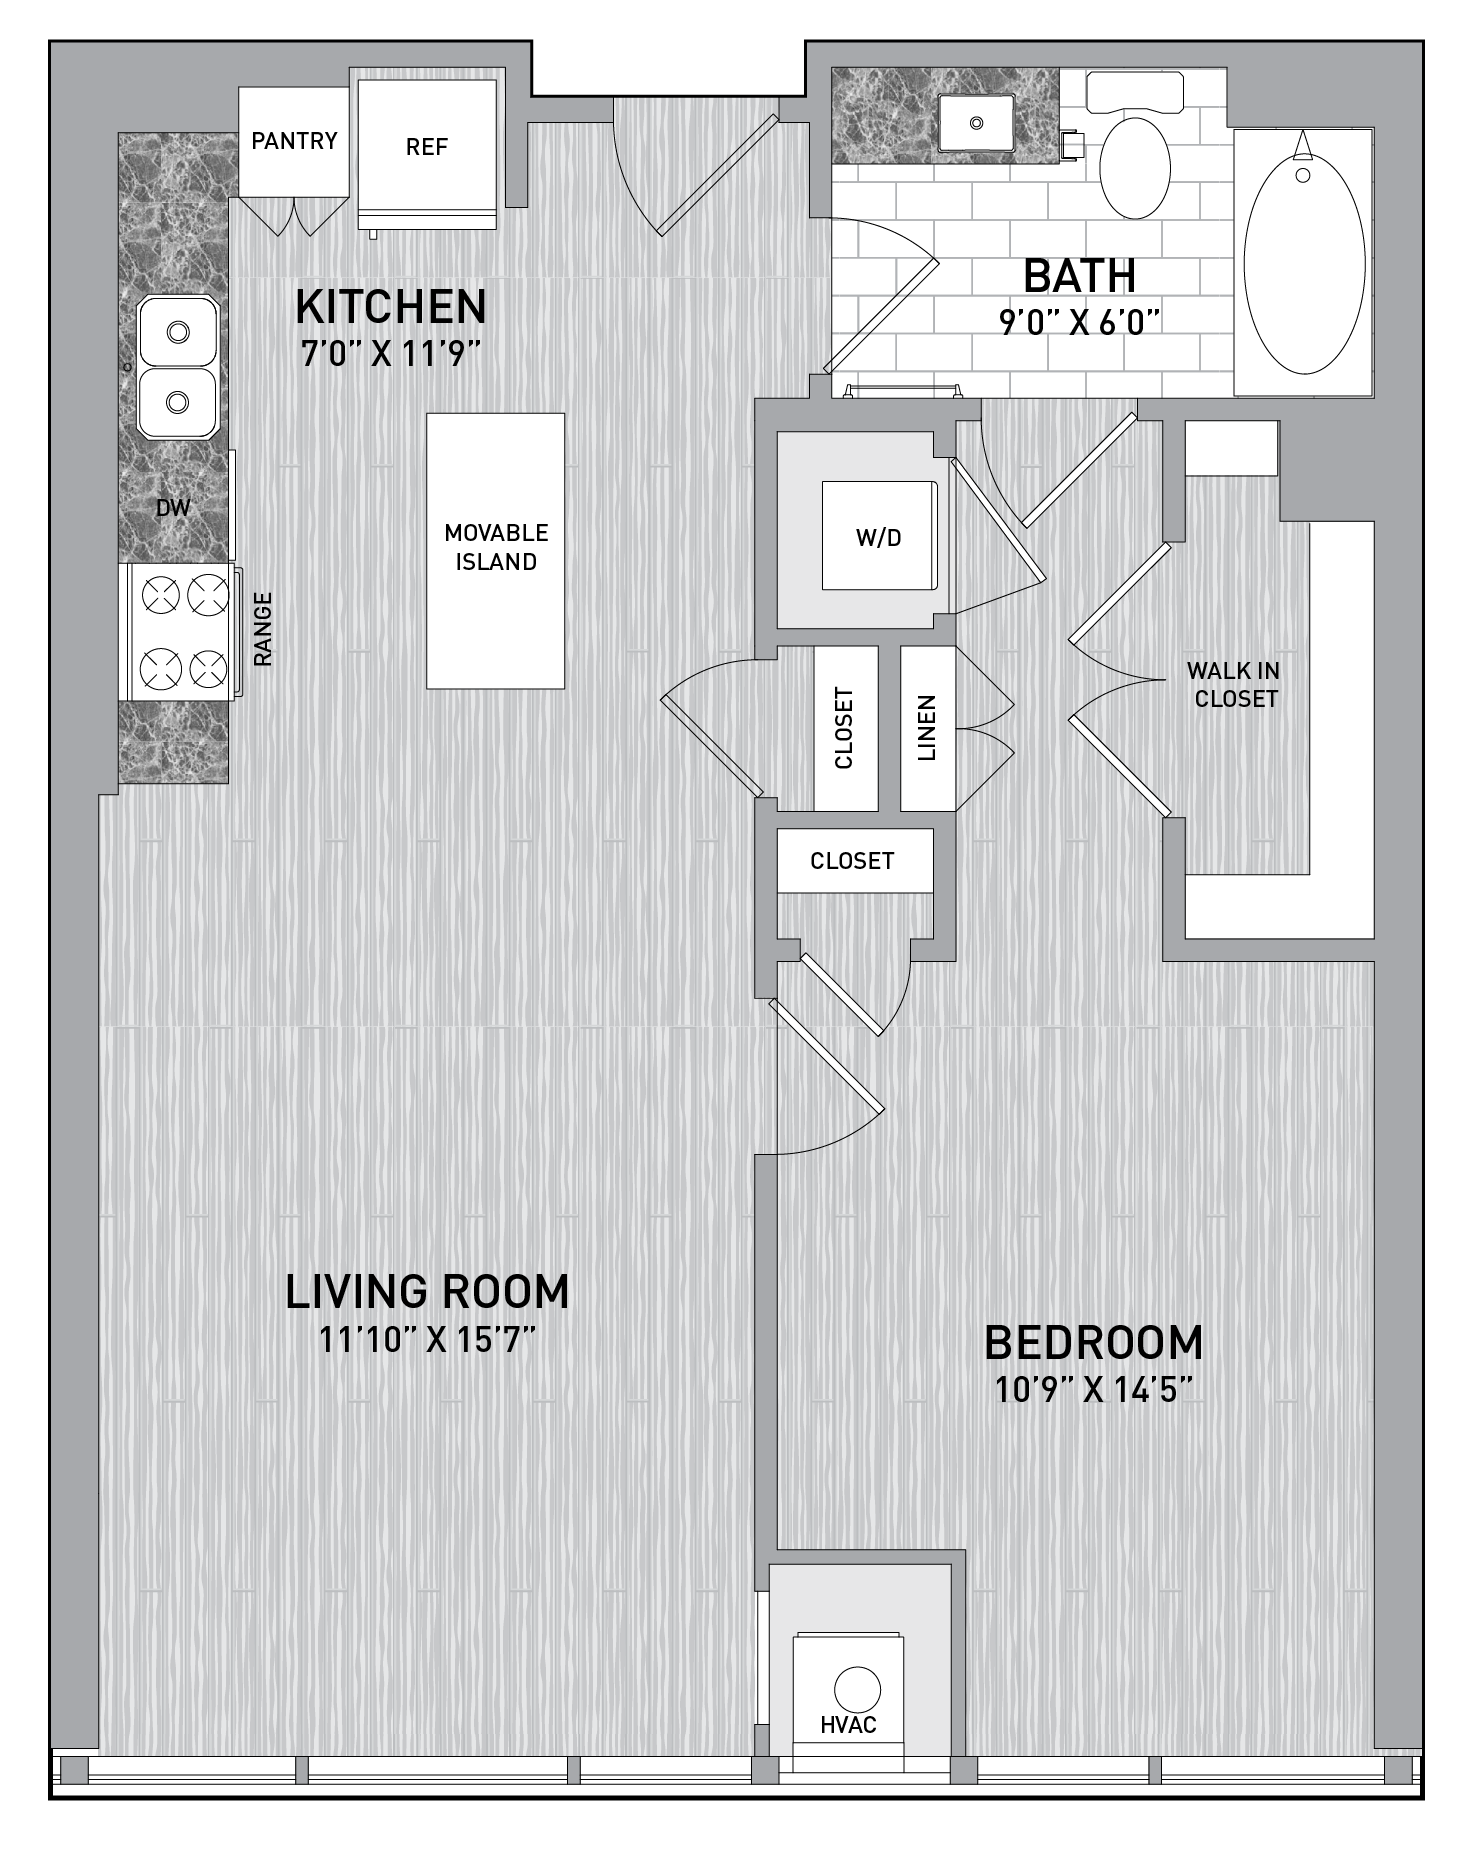 floorplan image of unit id 0413